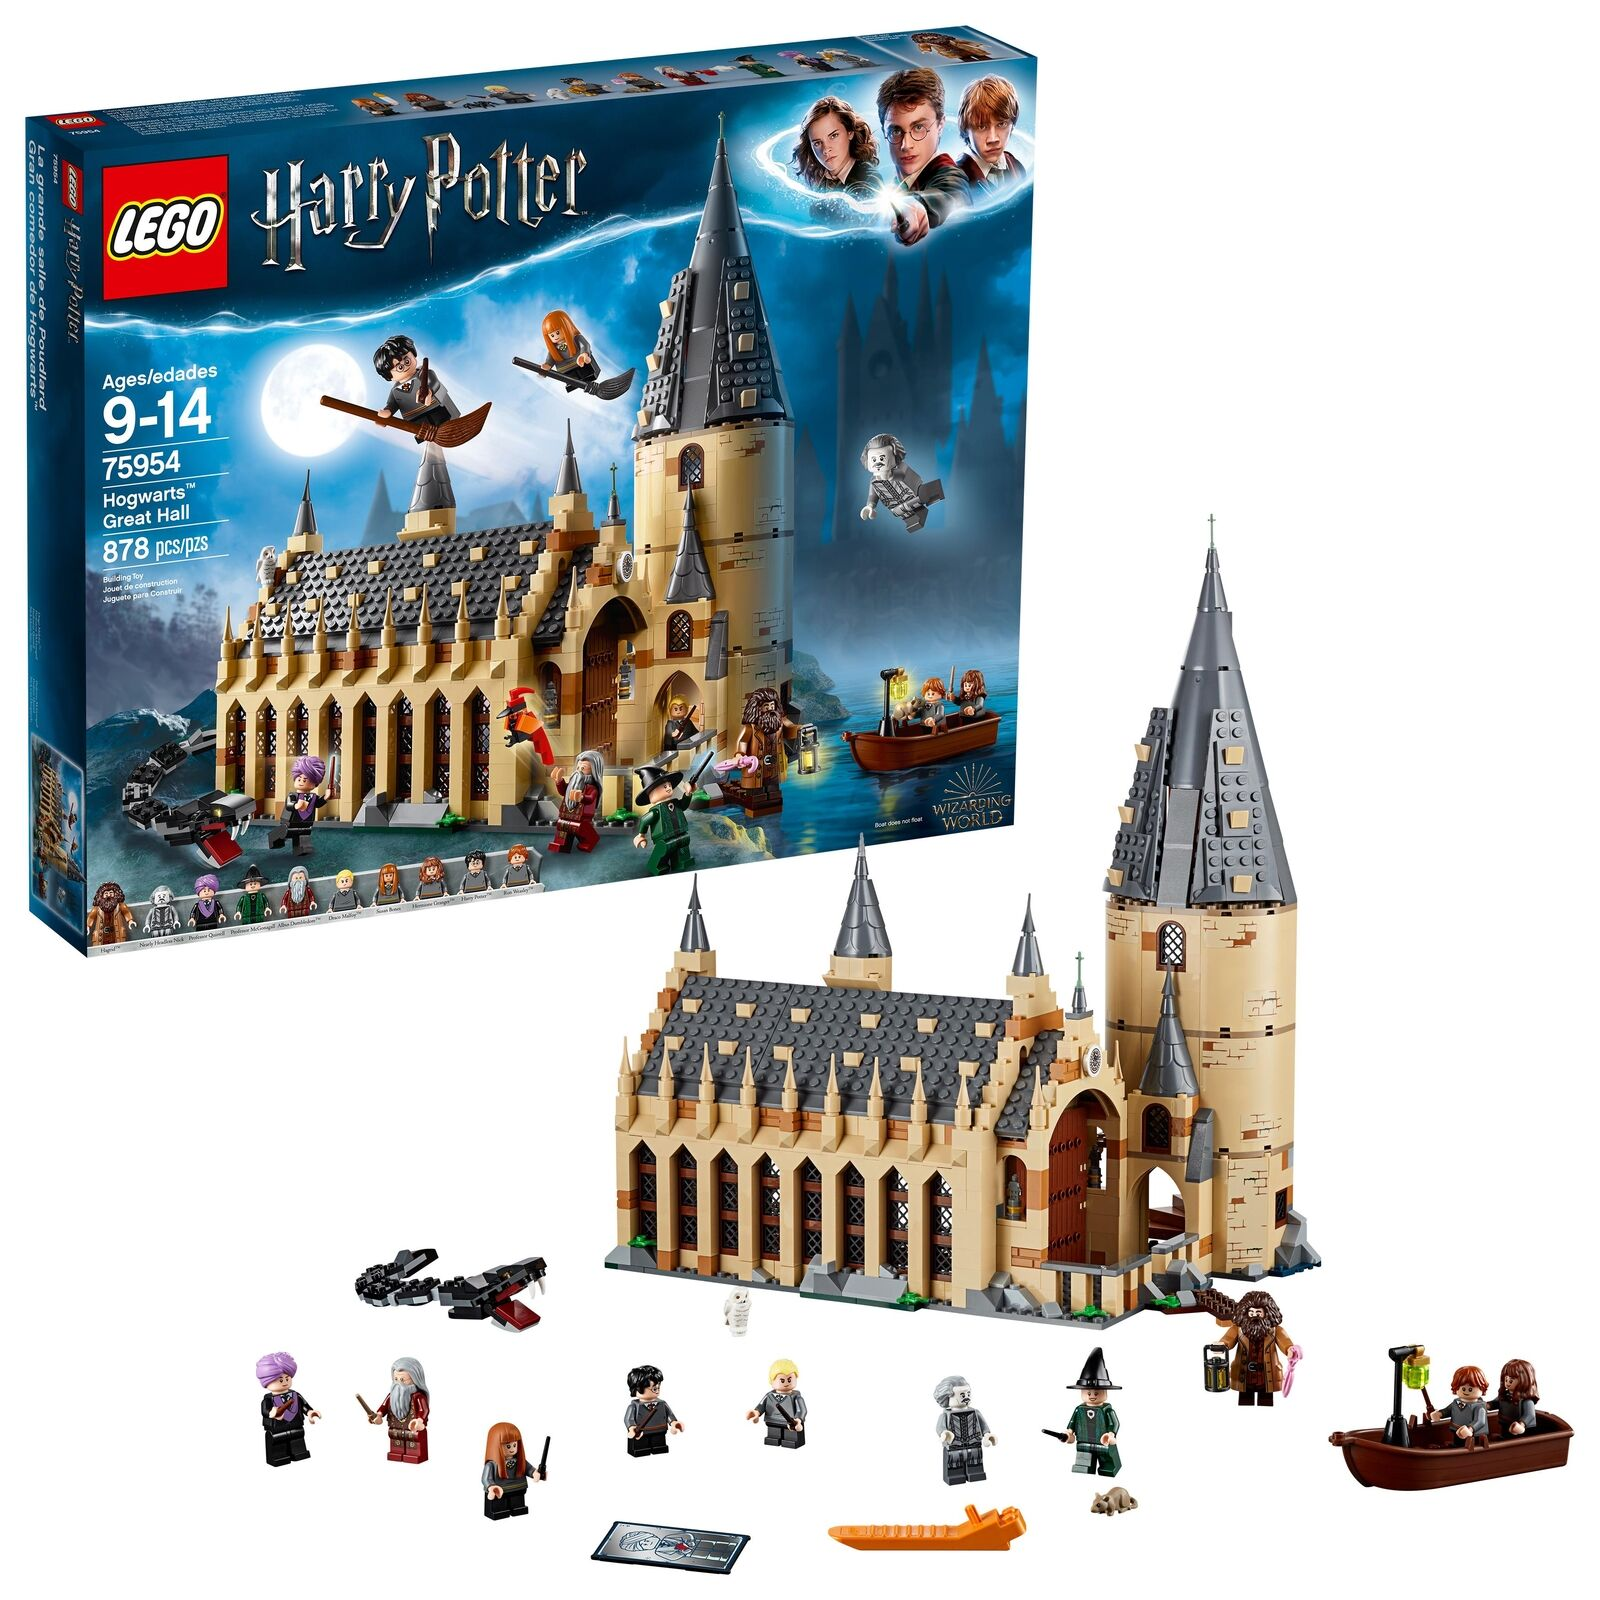 LEGO Harry Potter Hogwarts Great Hall 75954 Kids Building Construction Toy Play